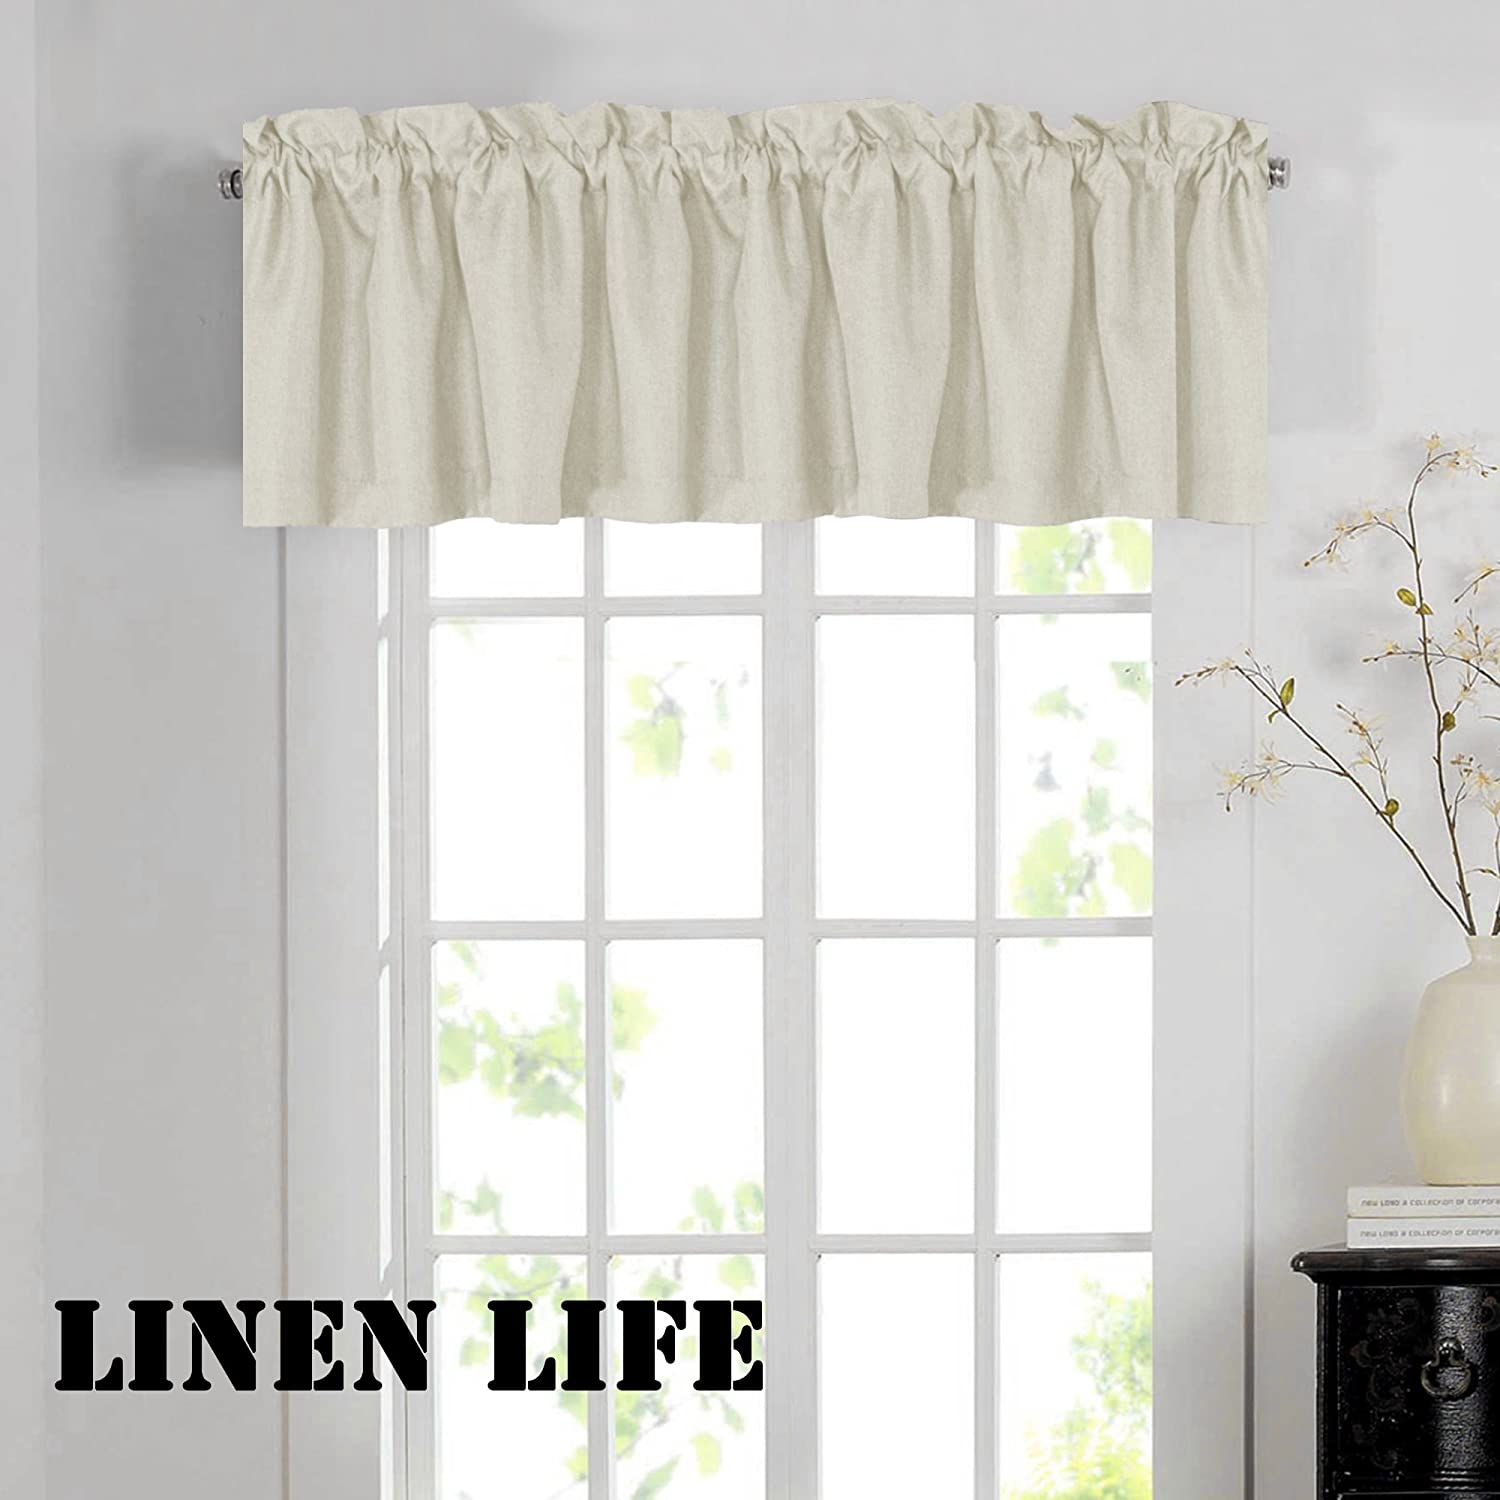 """H.VERSAILTEX Thermal Insulated Window Treatment Valances for Kitchen, Bath, Bedroom, Living Room (Made of Rich Faux Linen, Rod Pocket,52"""" W x18 L,Ivory White, Set of 1)"""